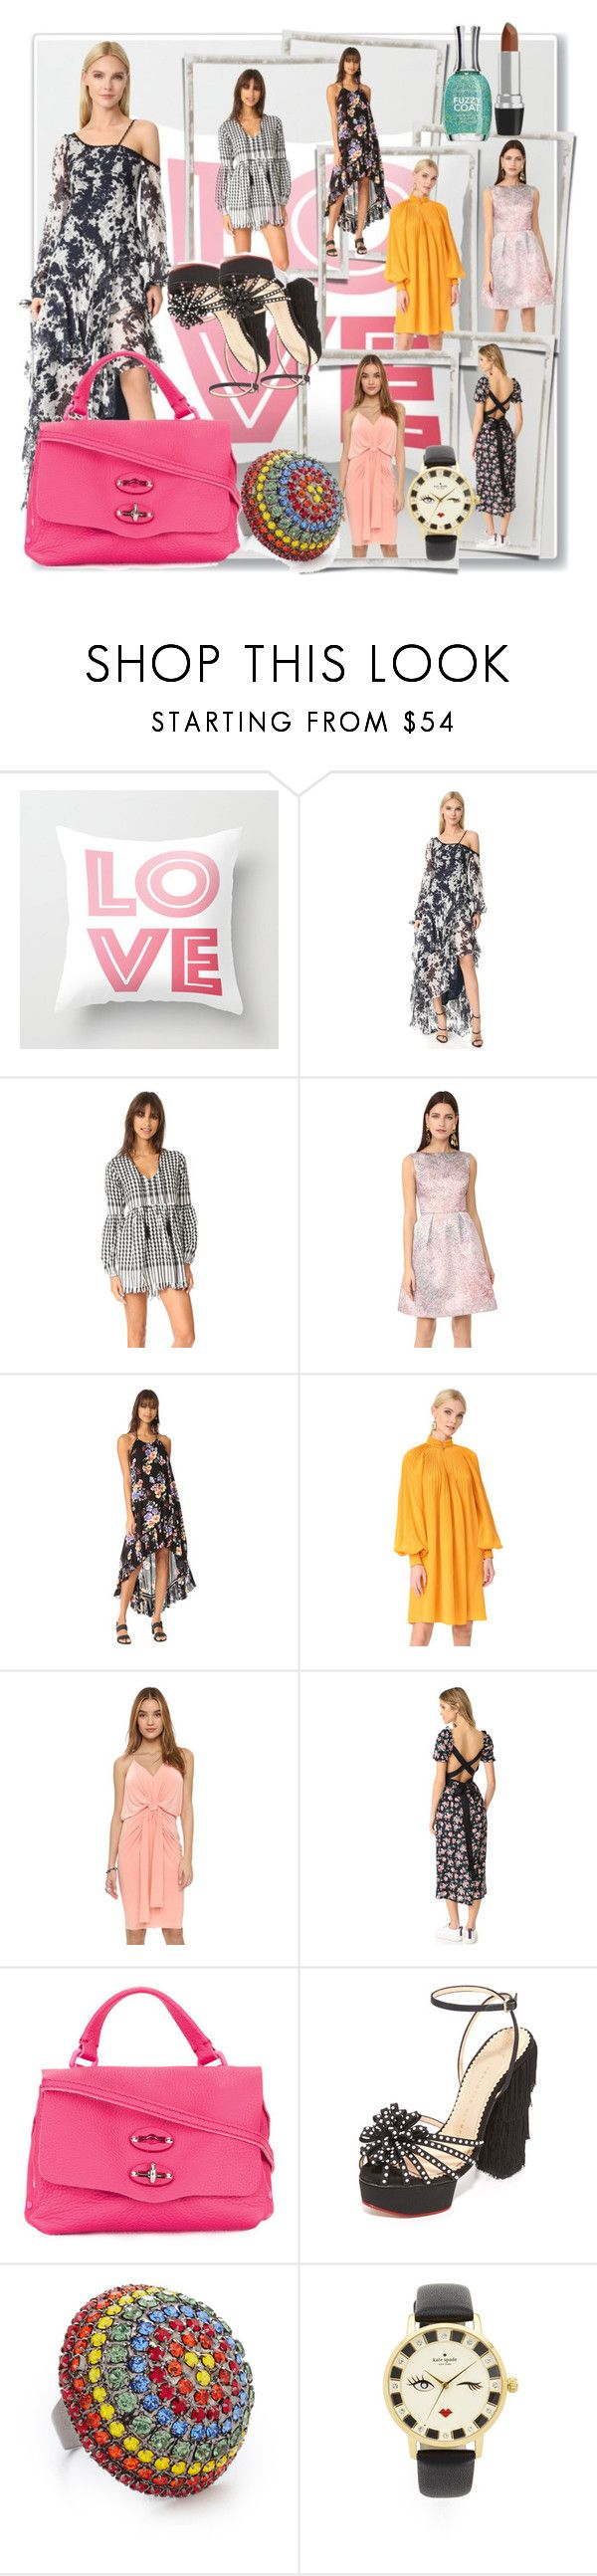 """""""Every Day Style!!"""" by stylediva20 ❤ liked on Polyvore featuring Jonathan Simkhai, Hello Parry, Monique Lhuillier, MINKPINK, TIBI, Misa, Mother of Pearl, Zanellato, Charlotte Olympia and Elizabeth Cole"""